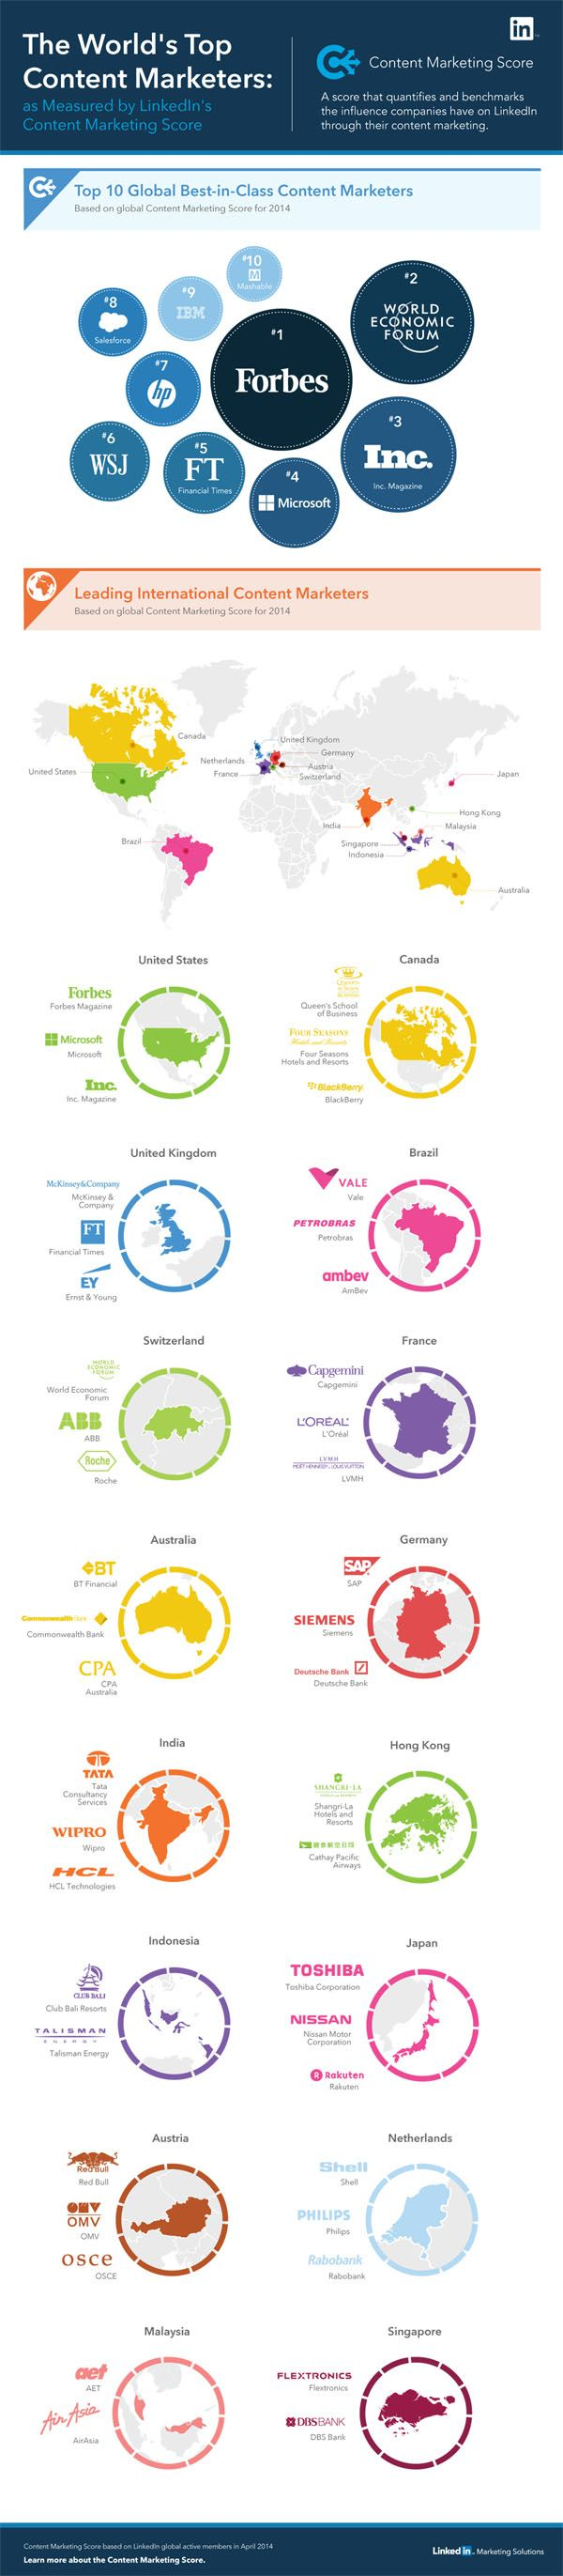 LinkedIn's Most Influential Global Brands [Infographic] - SocialTimes